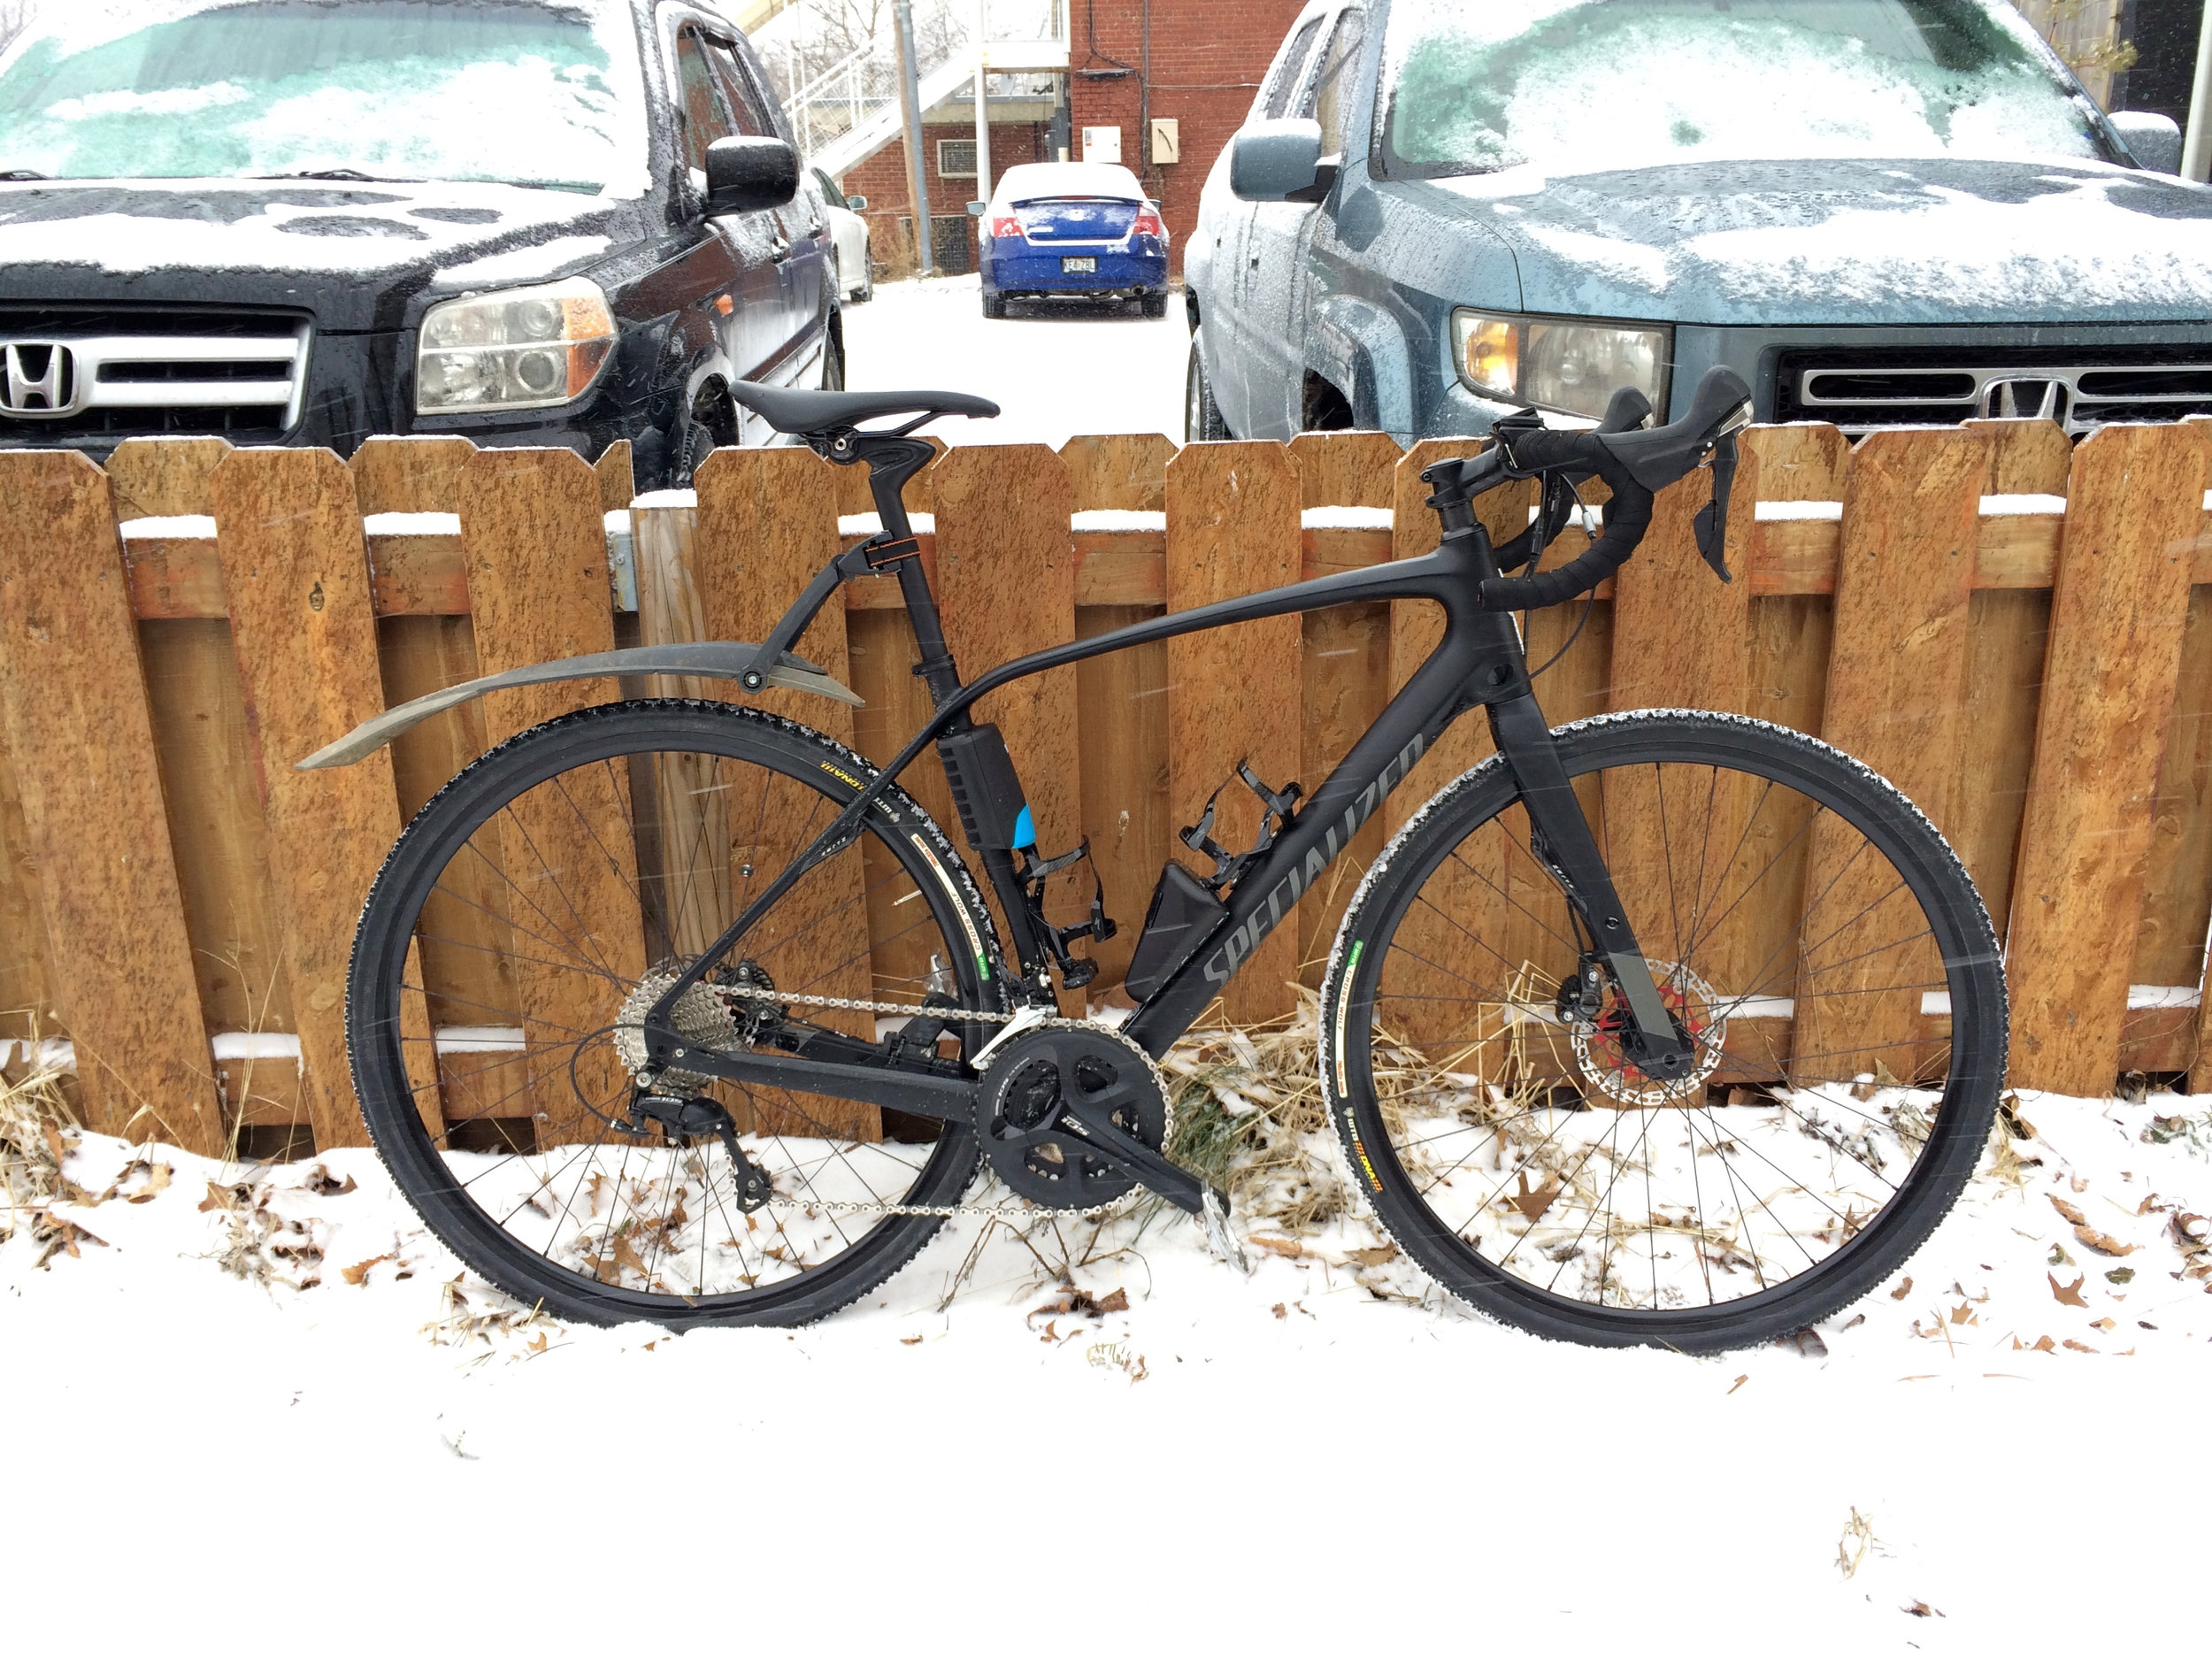 """In """"Full-Winter Mode"""" with 32mm knobby tires and a SKS X-Blade Mud Guard."""